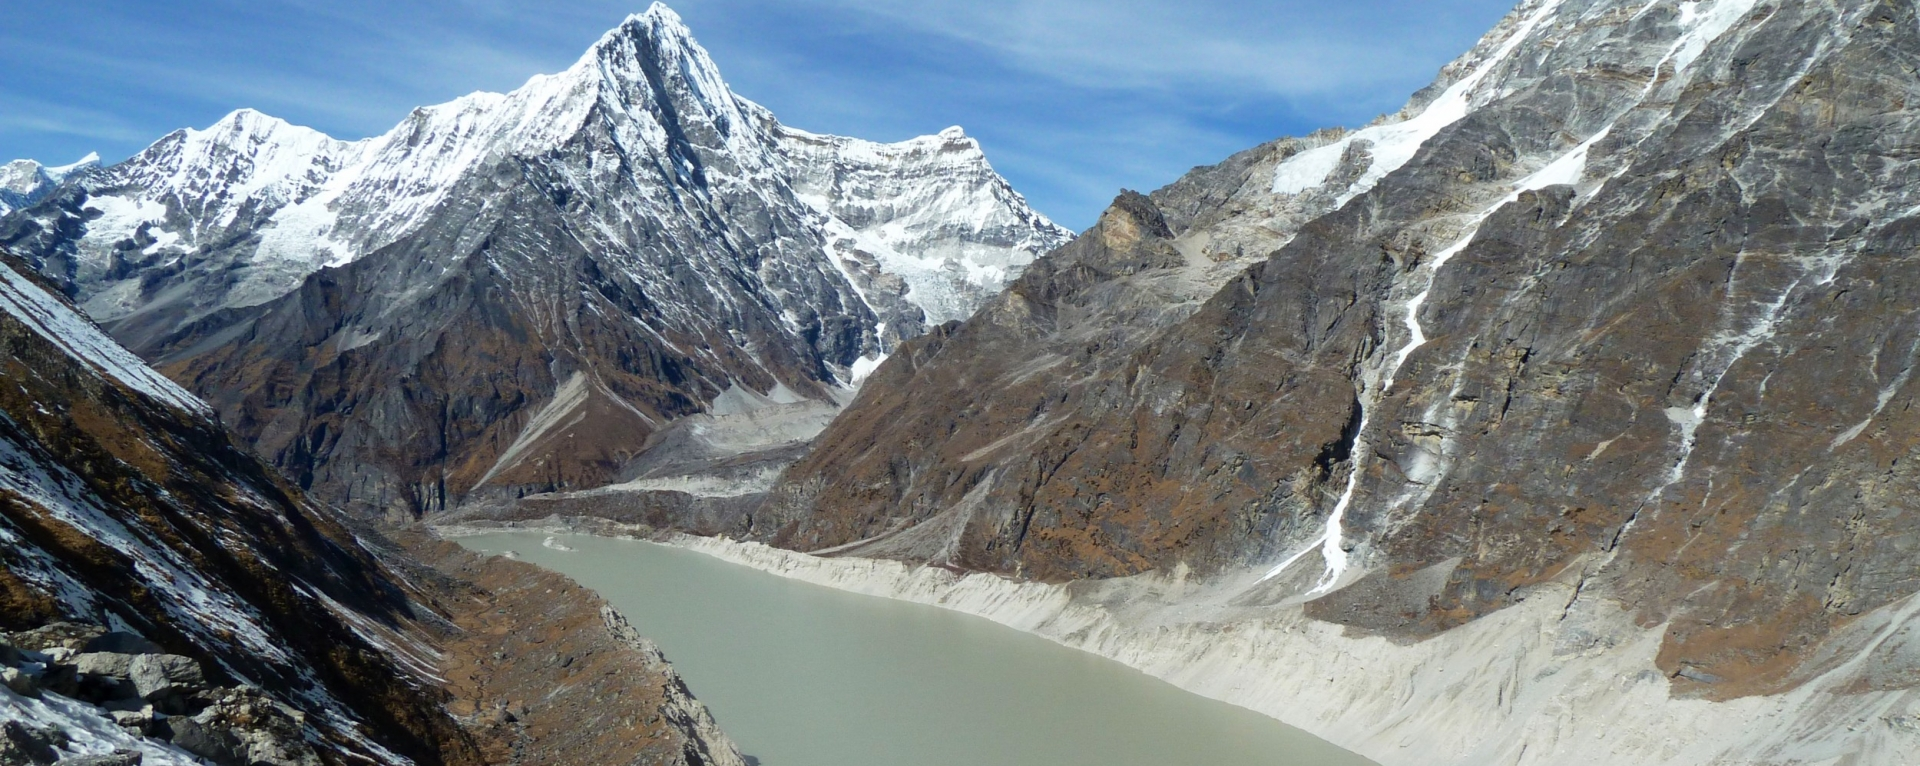 Tsho Rolpa lake in Rolwaling Valley.